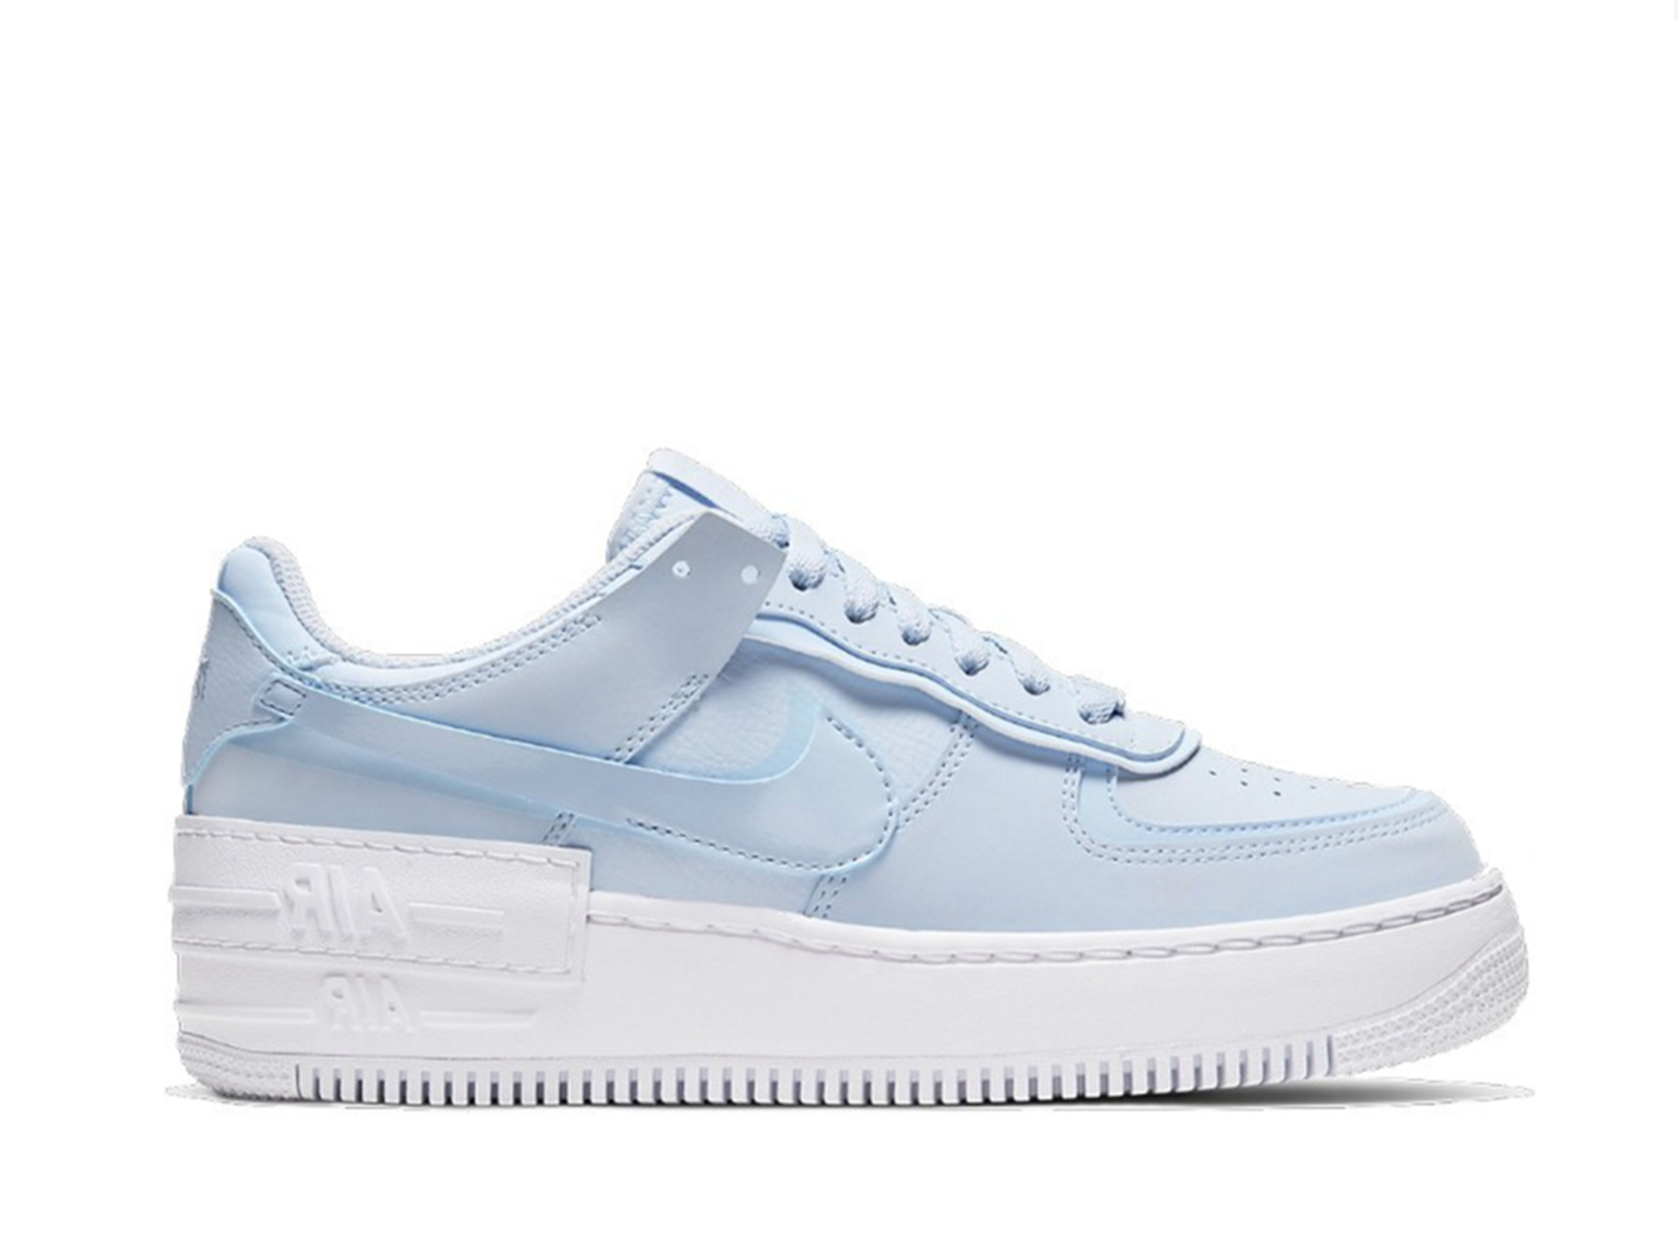 Nike Air Force 1 Shadow Hydrogen Blue Women S Double Boxed Nike air force 1 white womens. gbp